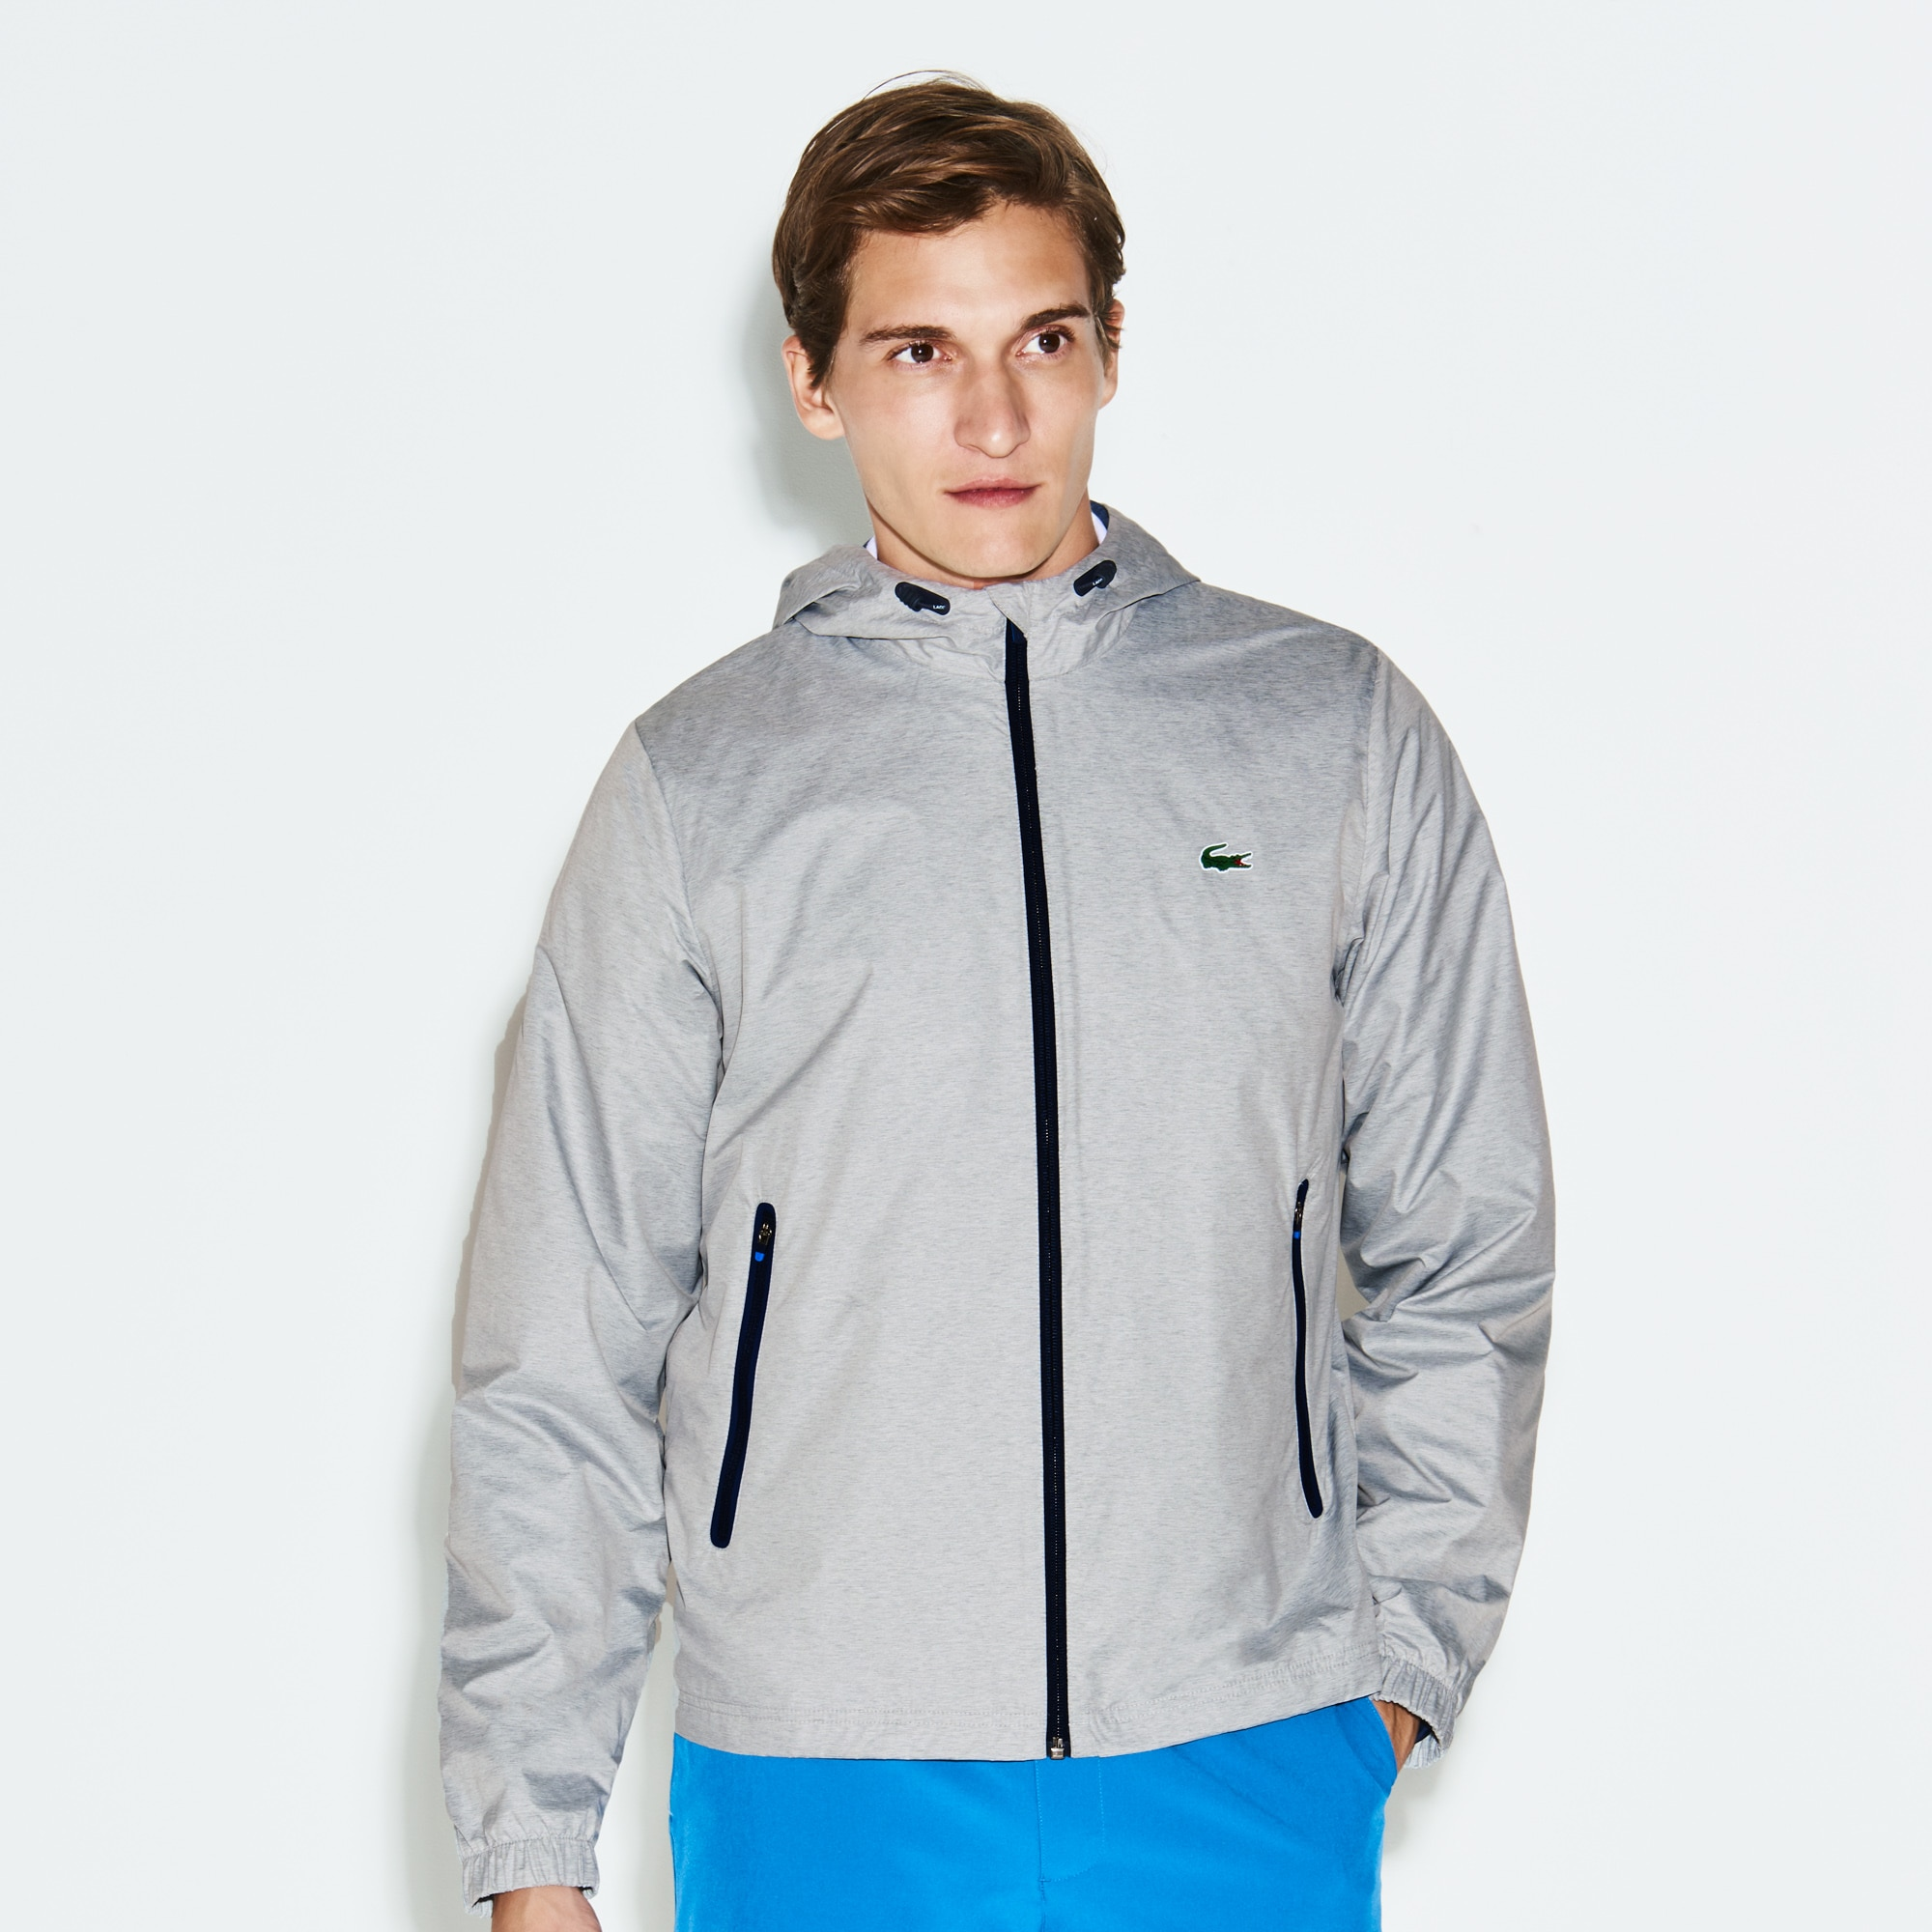 Men's SPORT Metallic Technical Taffeta Zip Golf Jacket